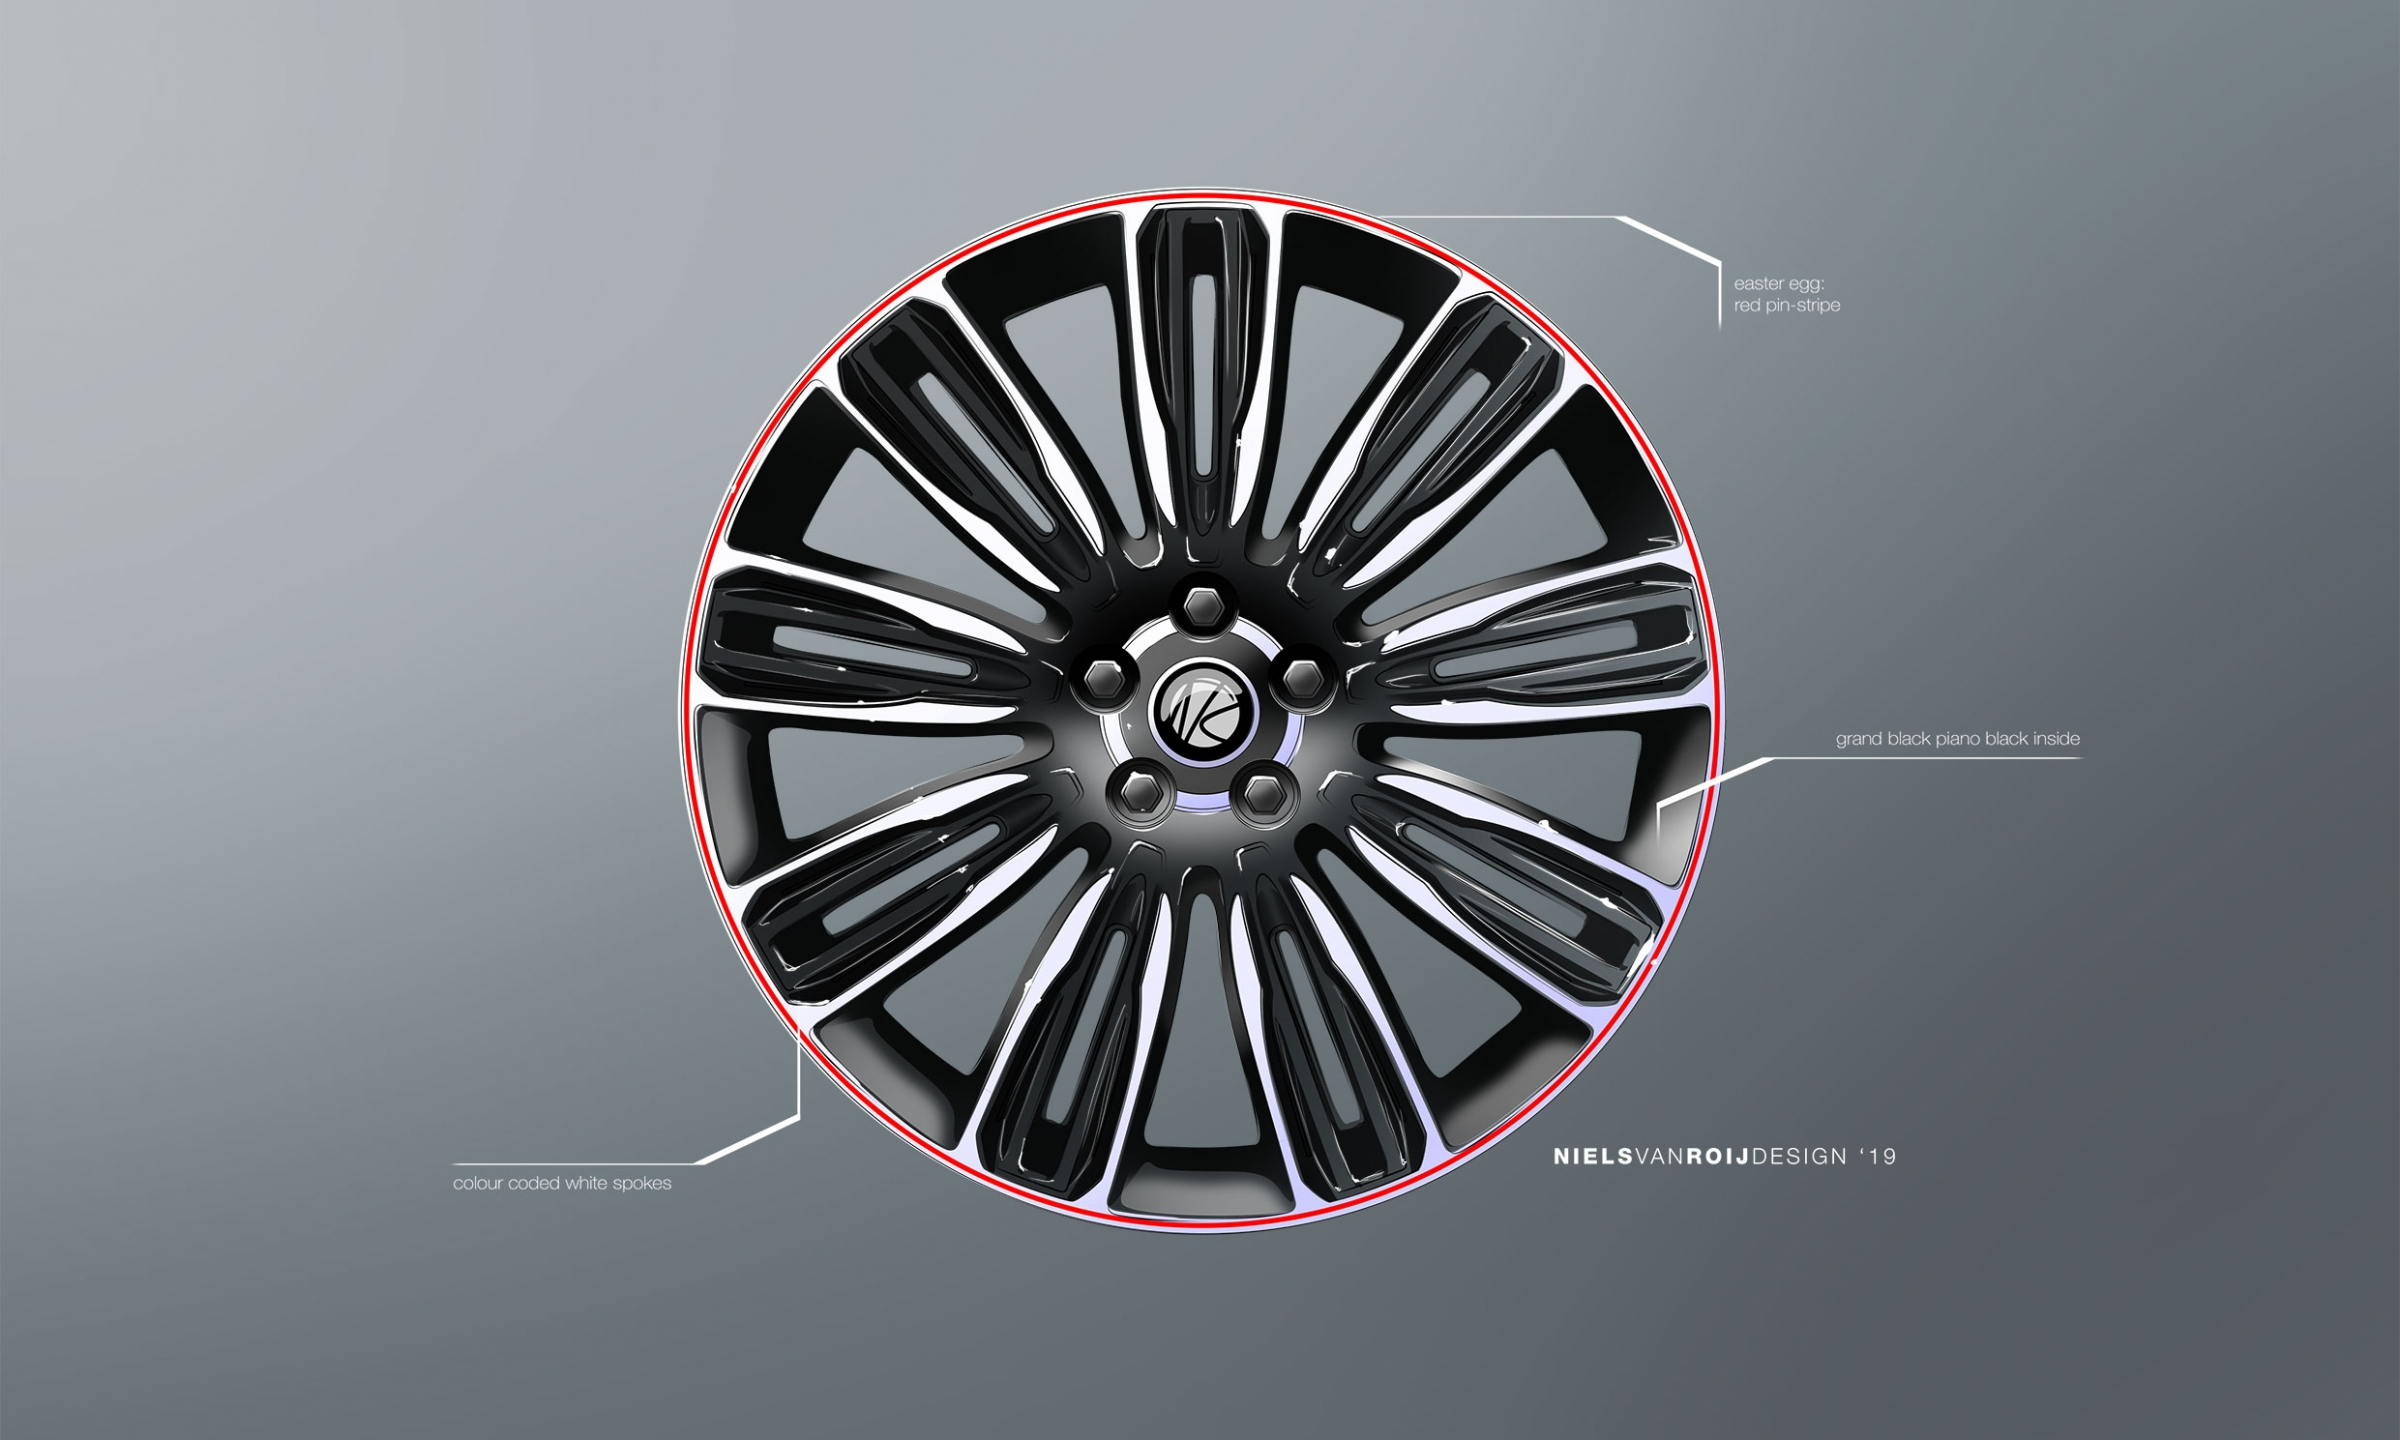 Reinvent the wheel | for coachbuilding